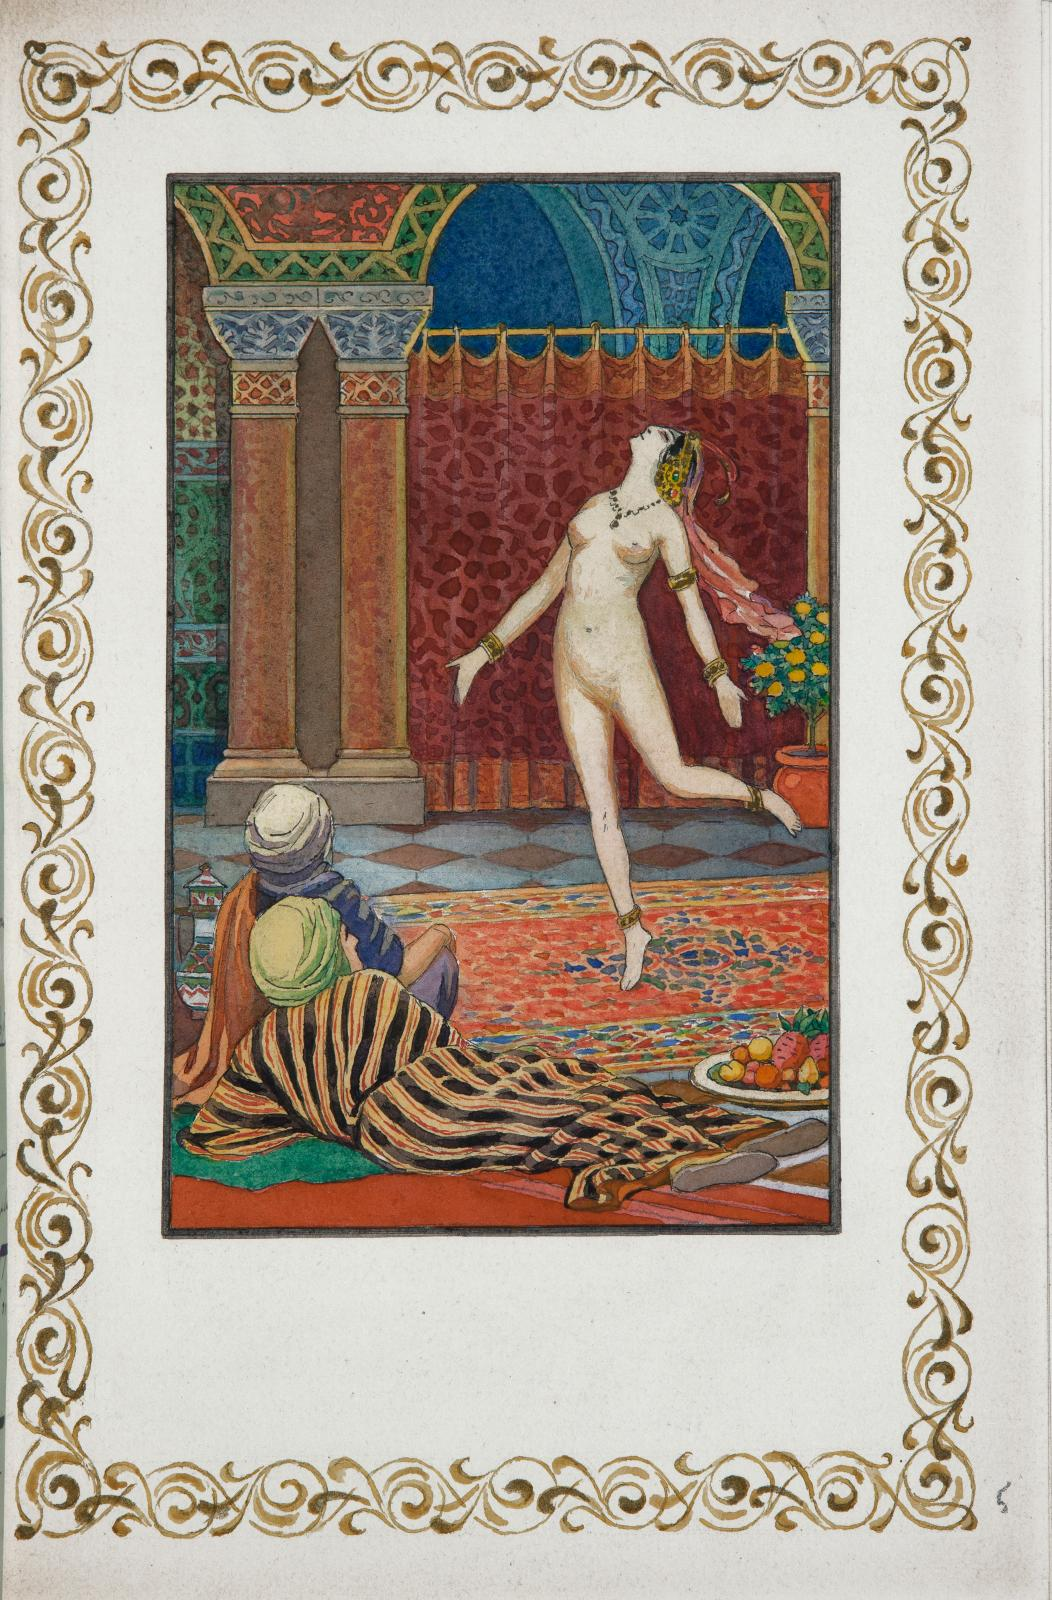 Franz Toussaint (1879-1955), Le Jardin des caresses (The garden of caresses), manuscript of 52 pages, illustrated with a title and nine wa